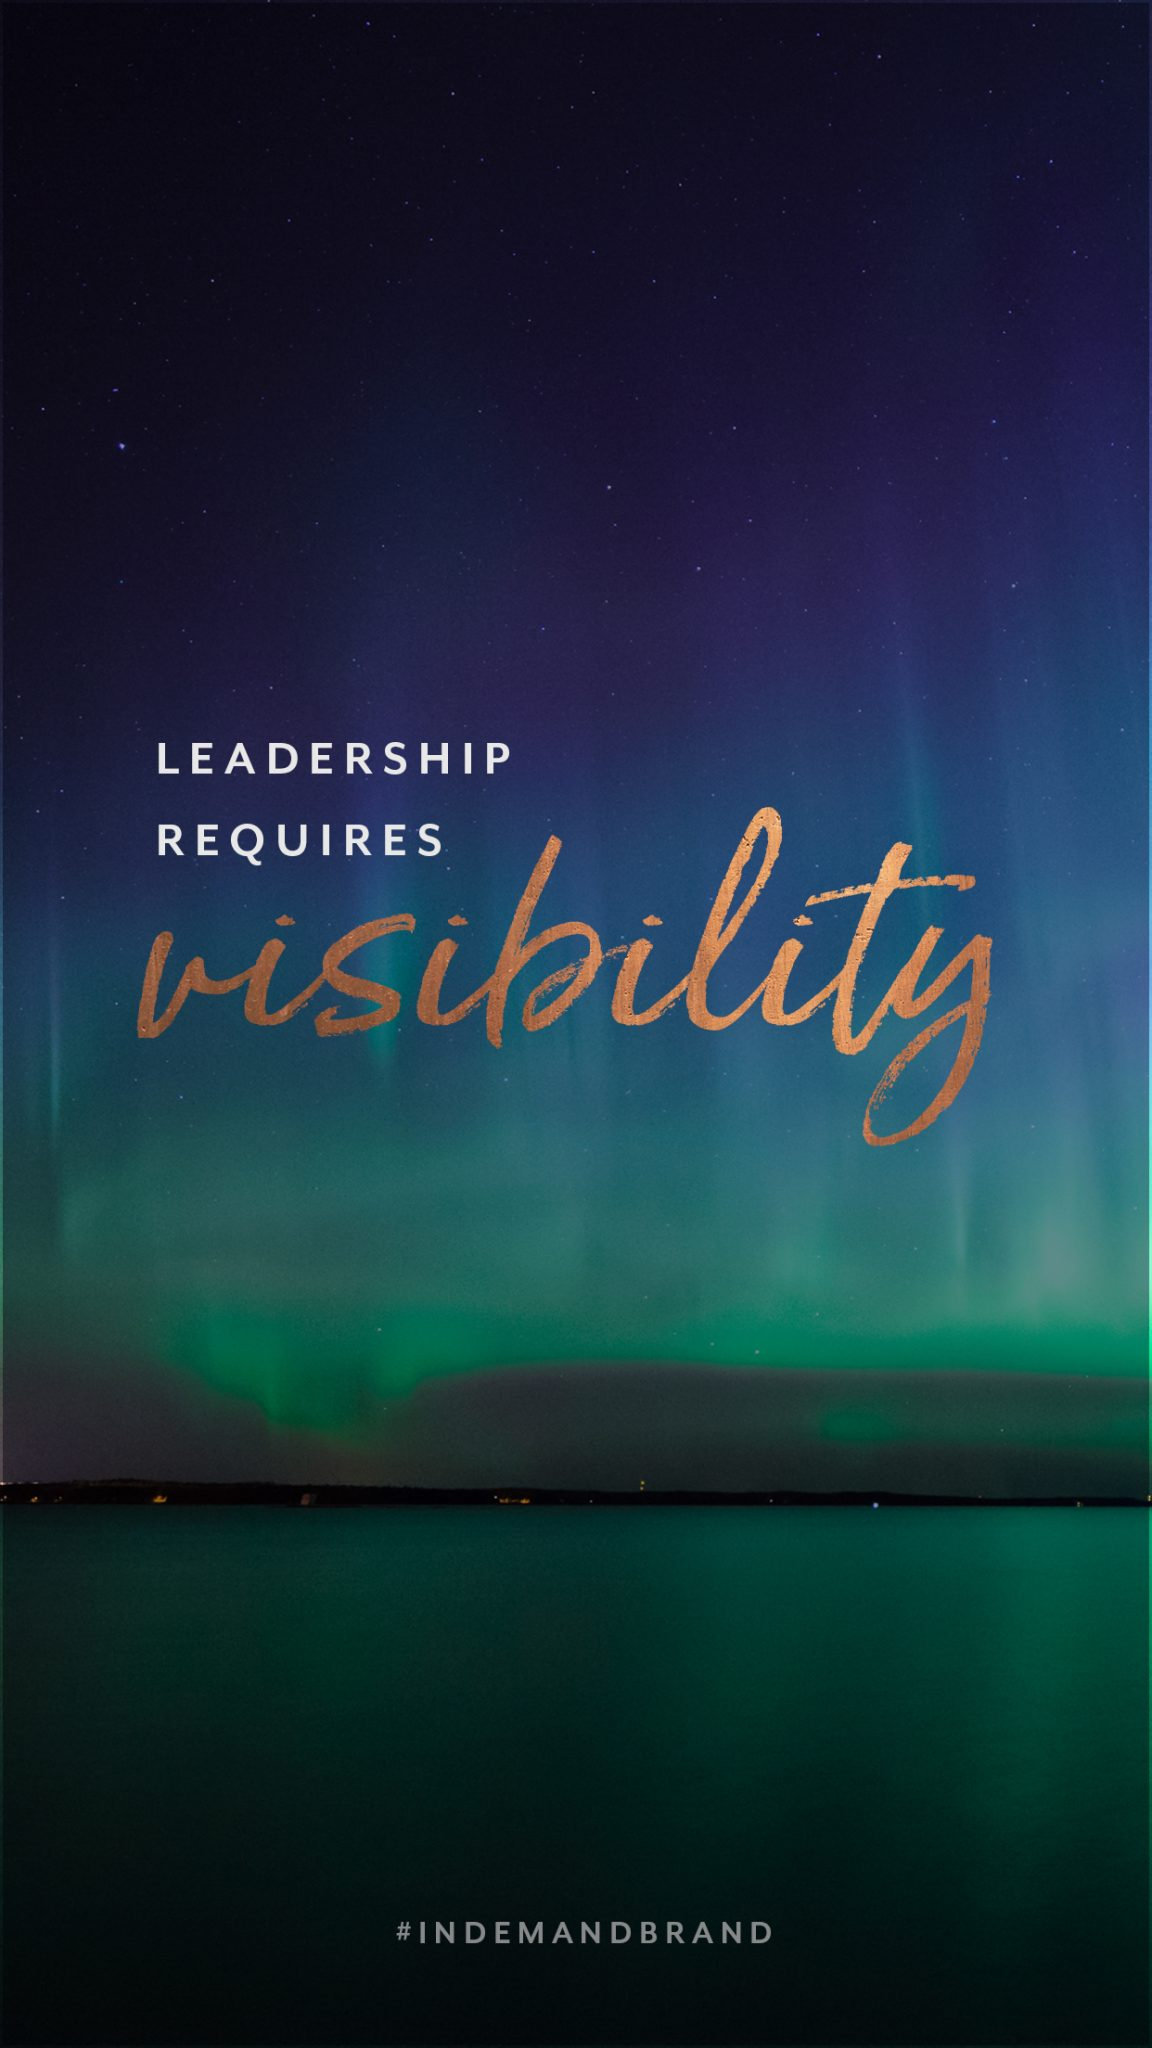 Leadership requires visibility. #InDemandBrand